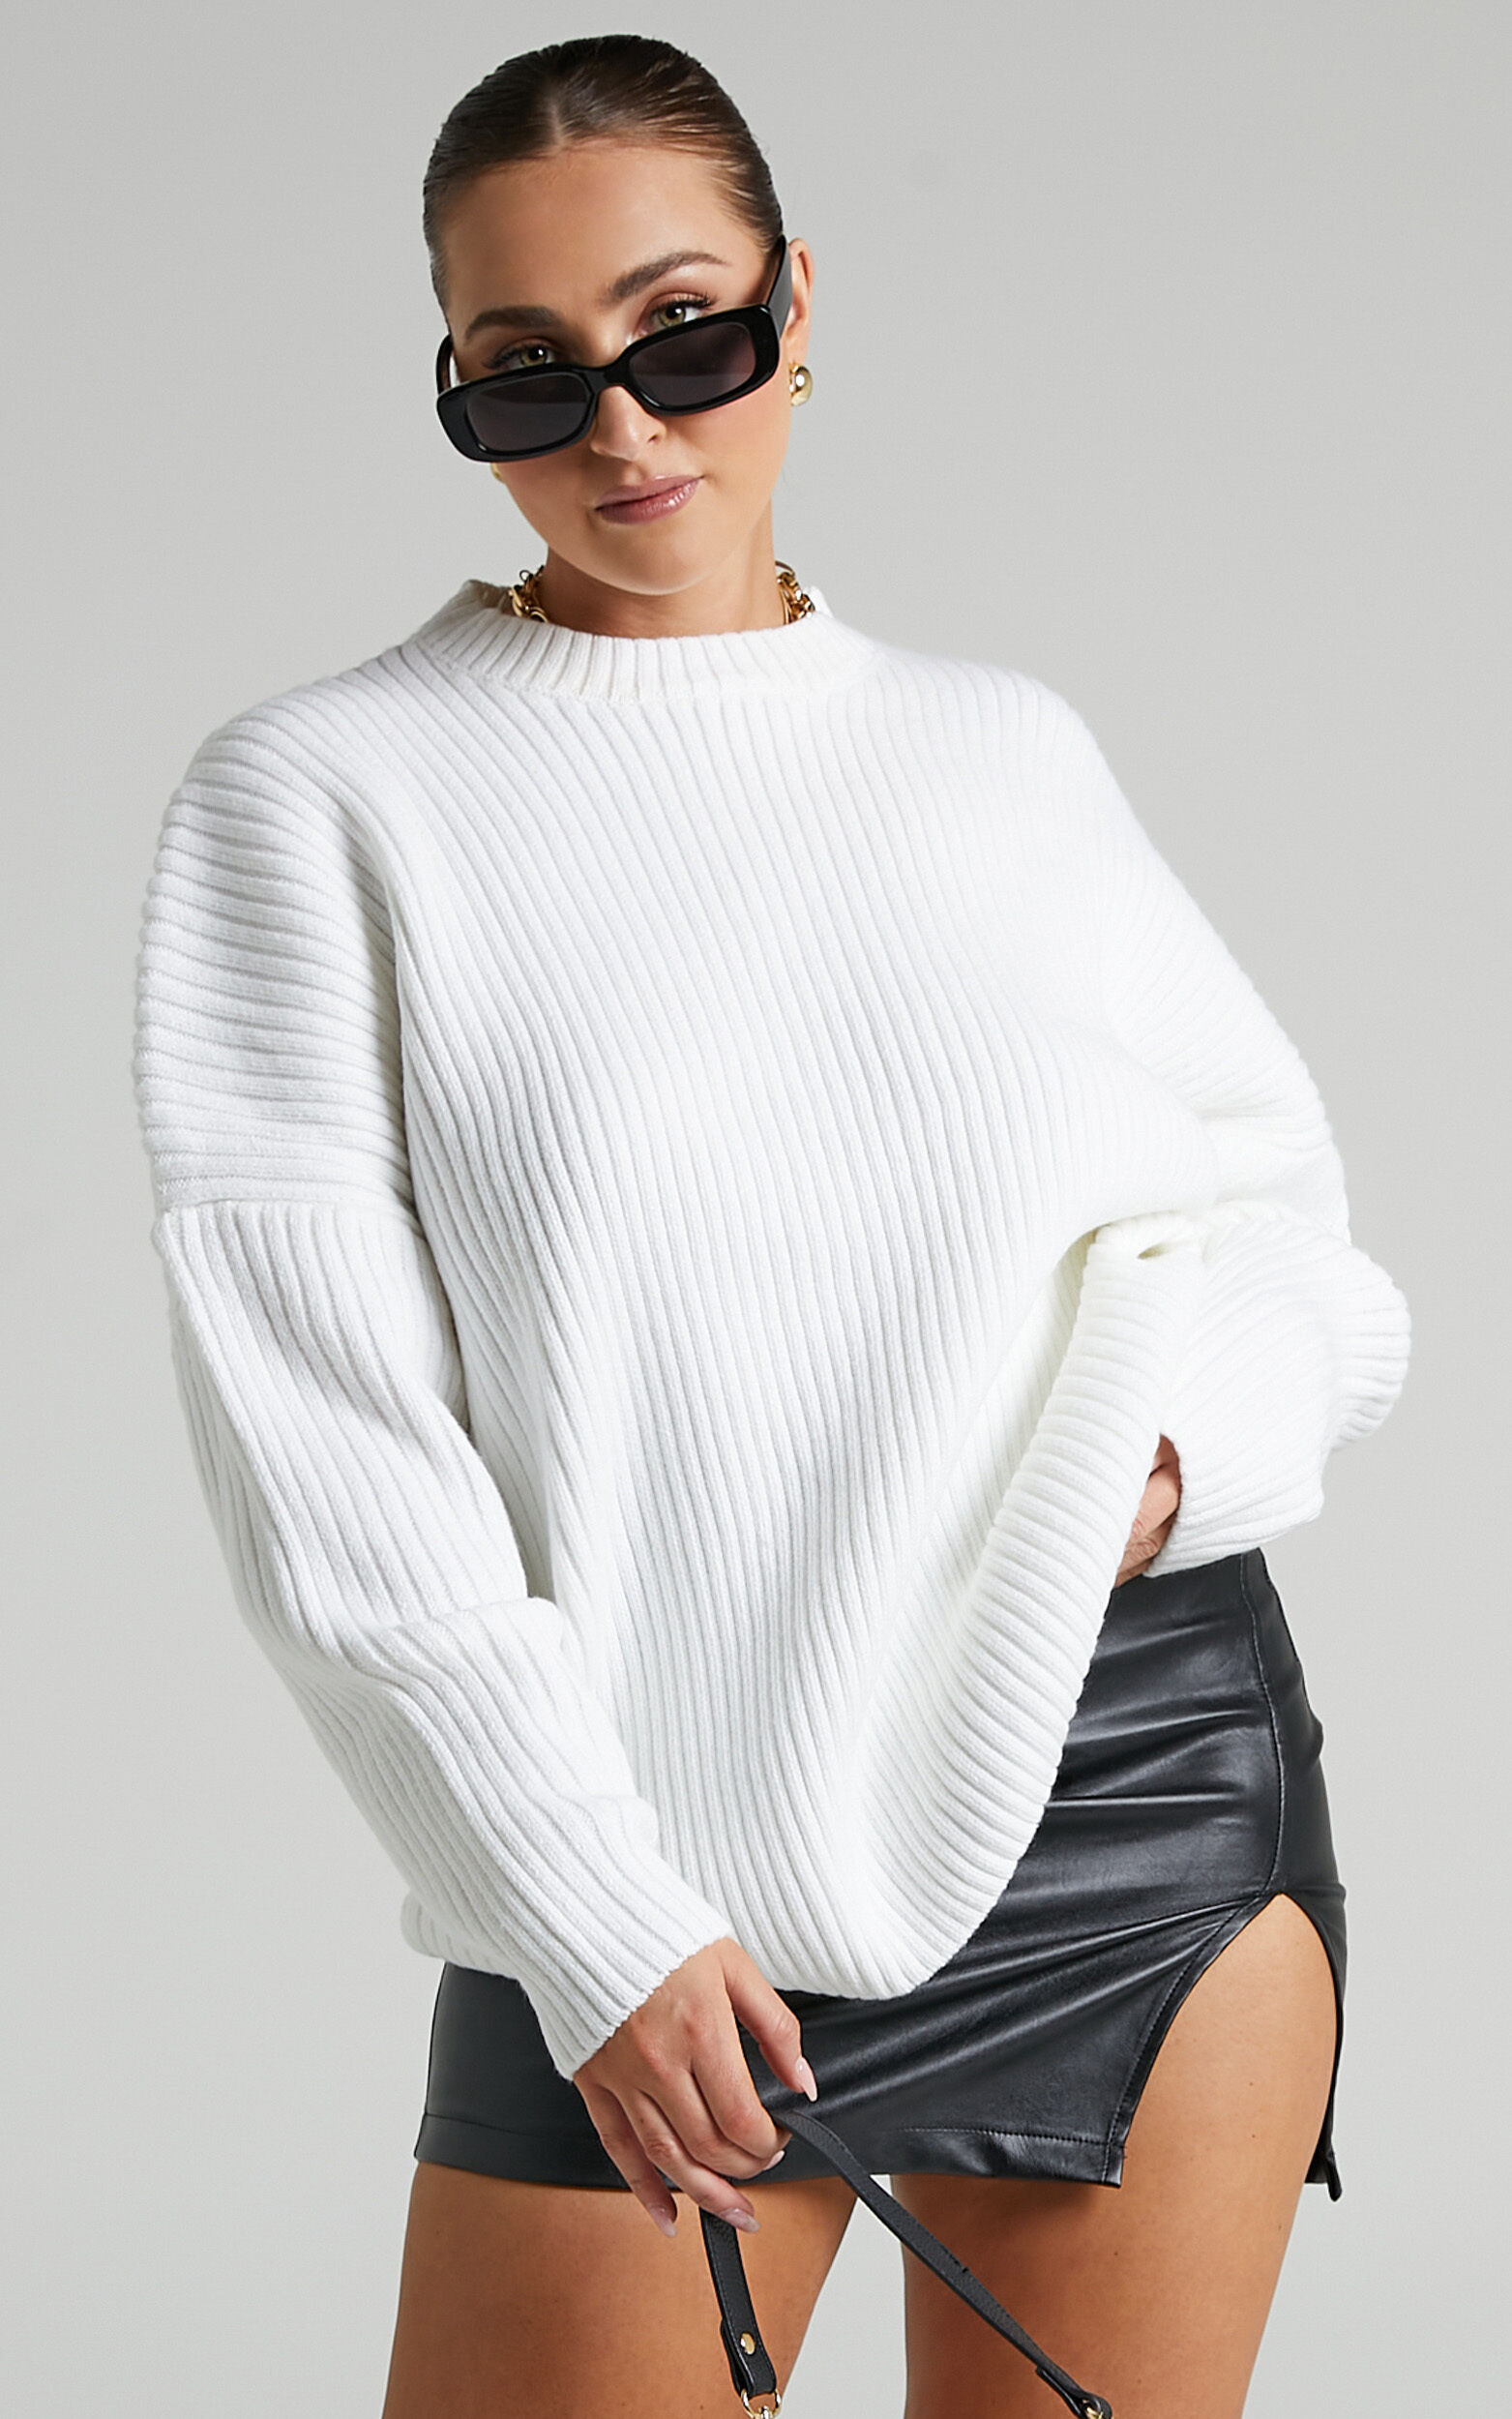 Julietta Back Cut Out Knit Jumper in White - 06, WHT1, super-hi-res image number null